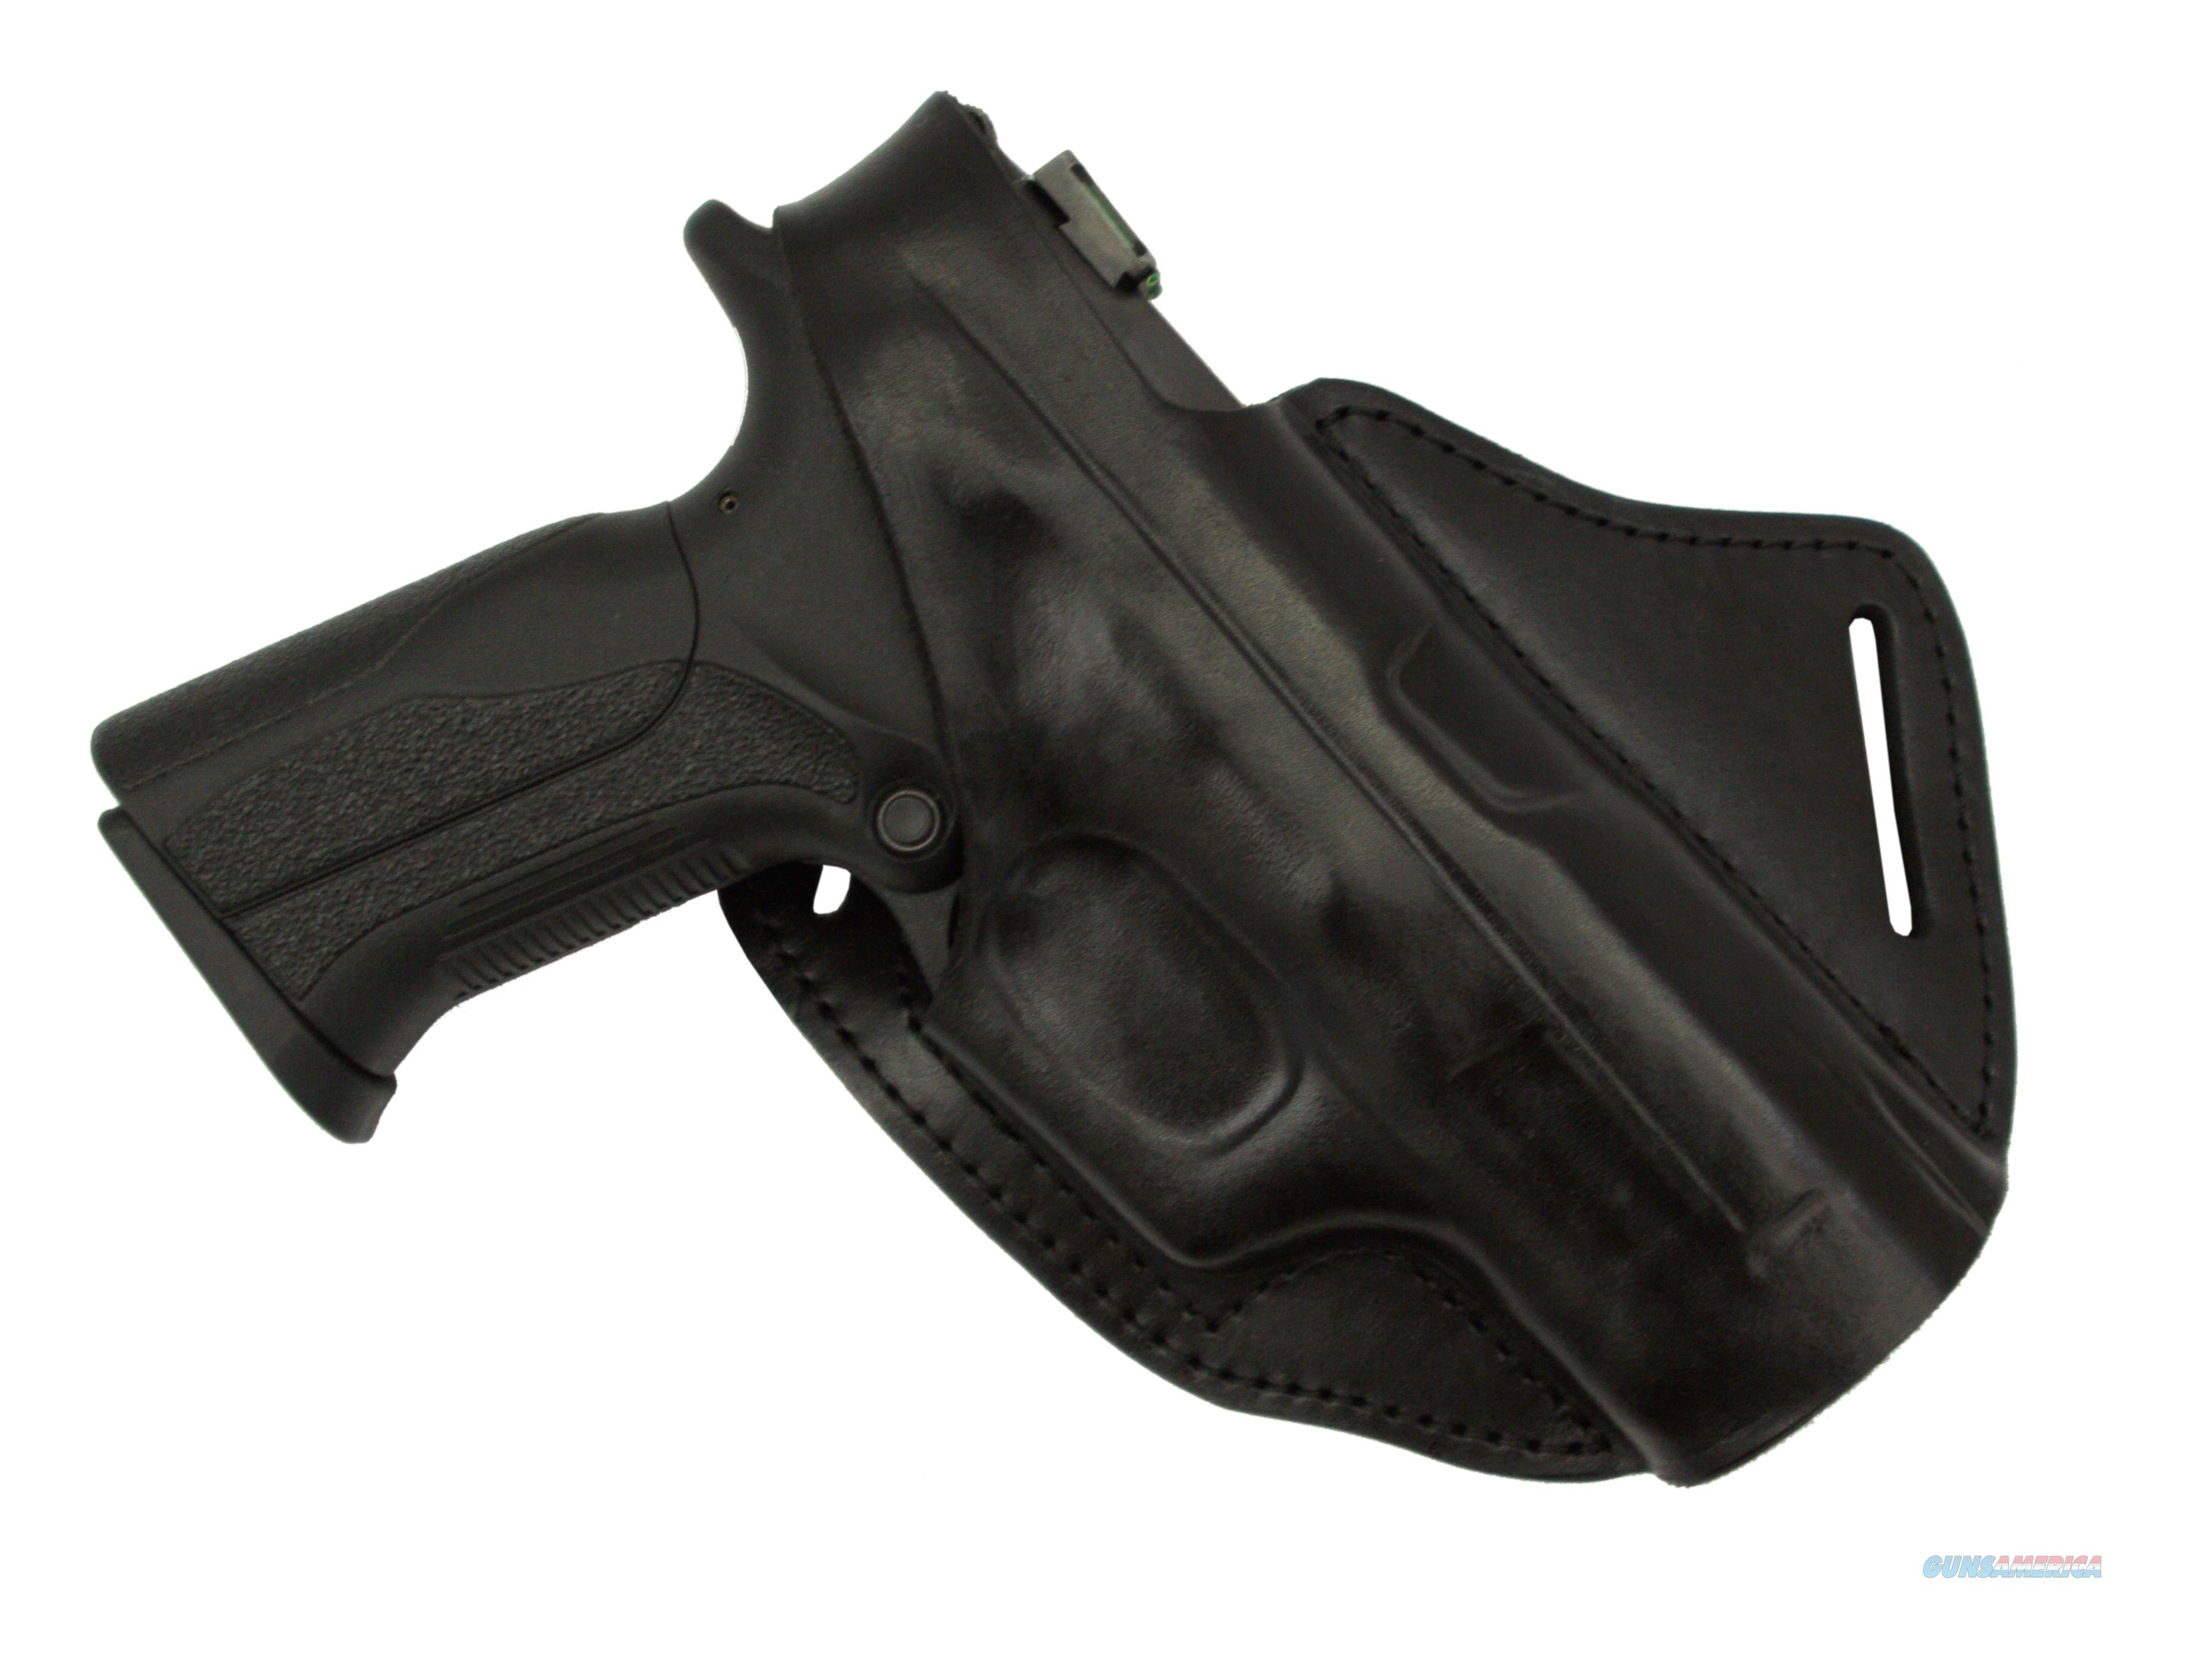 Cross Draw Leather Belt Holster  Heckler & Koch P30  Non-Guns > Holsters and Gunleather > Concealed Carry